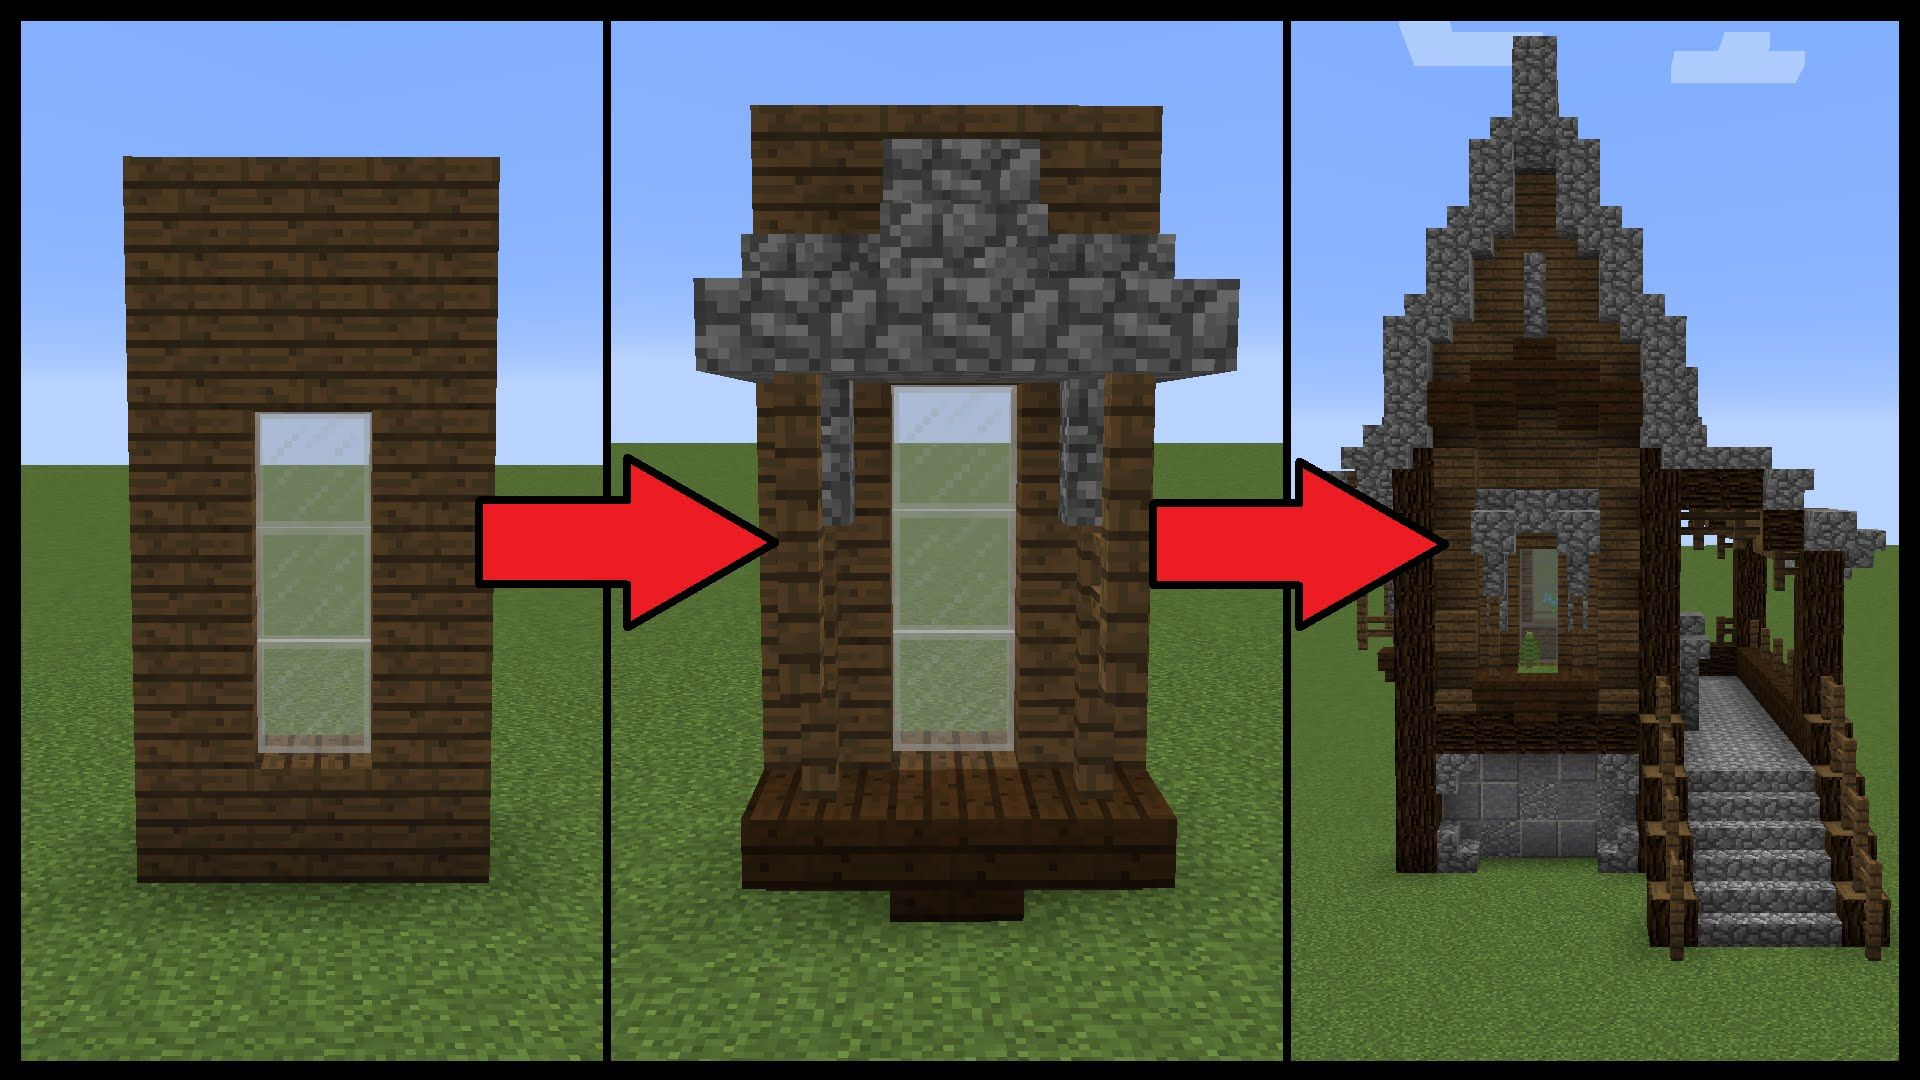 How To Make Better Windows On Your Minecraft House Today I Will